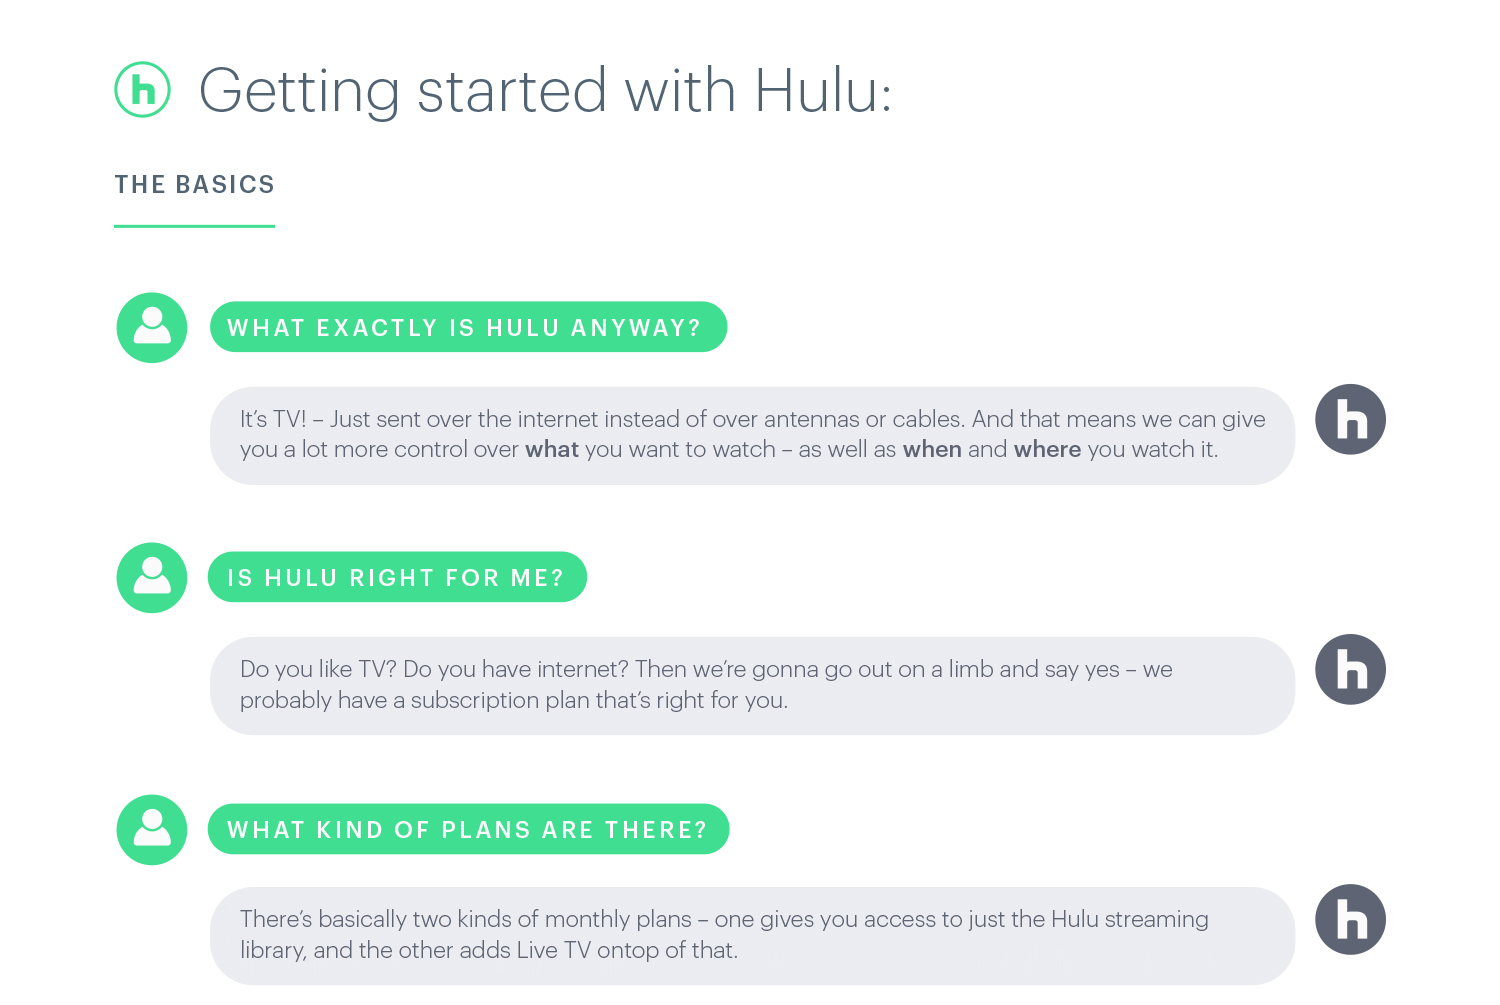 Getting started with Hulu - the basics: What exactly is Hulu anyway? It's TV